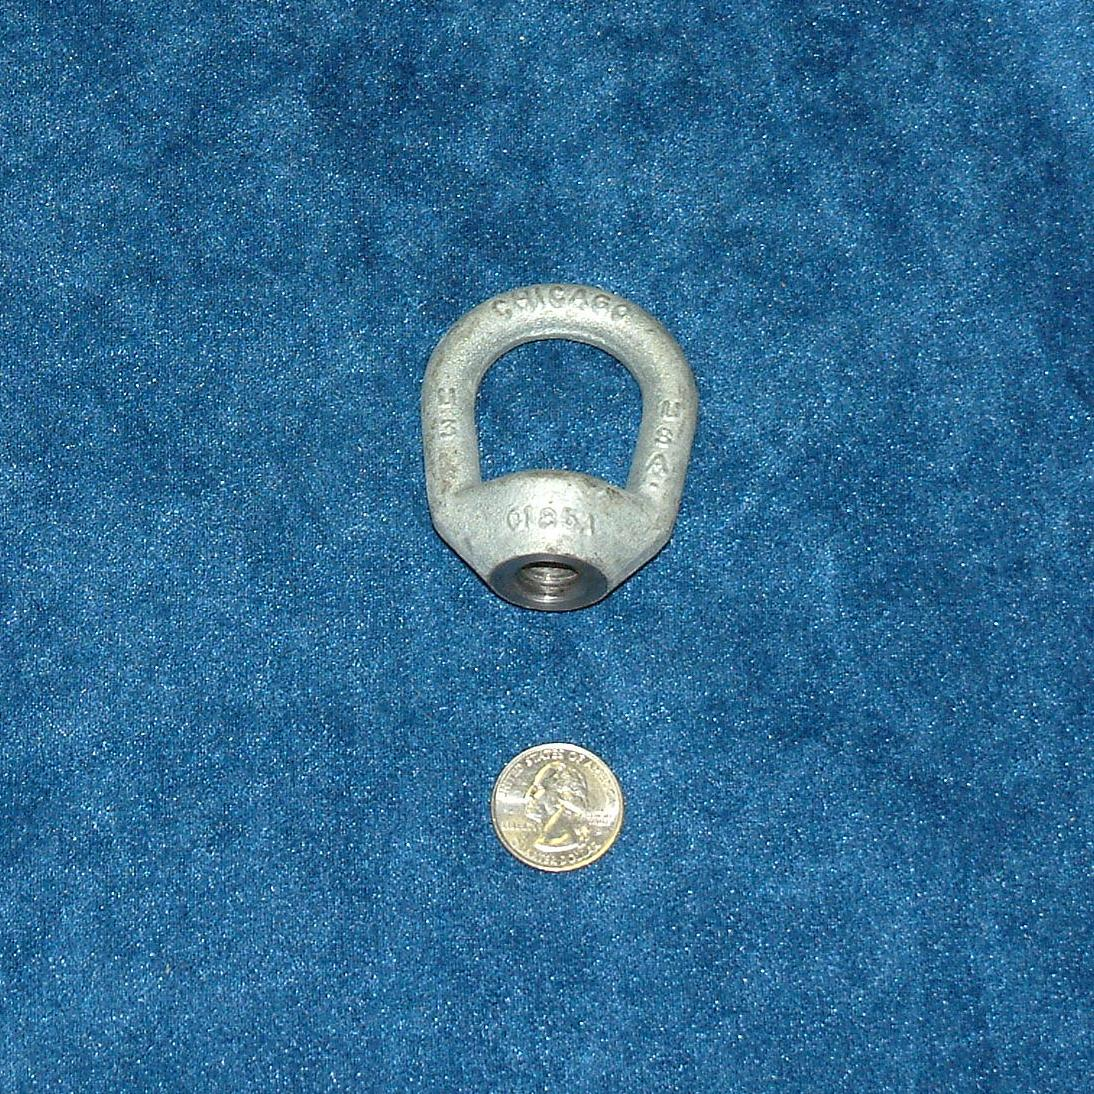 1/2 inch coarse thread tapped forged galvanized eye nut